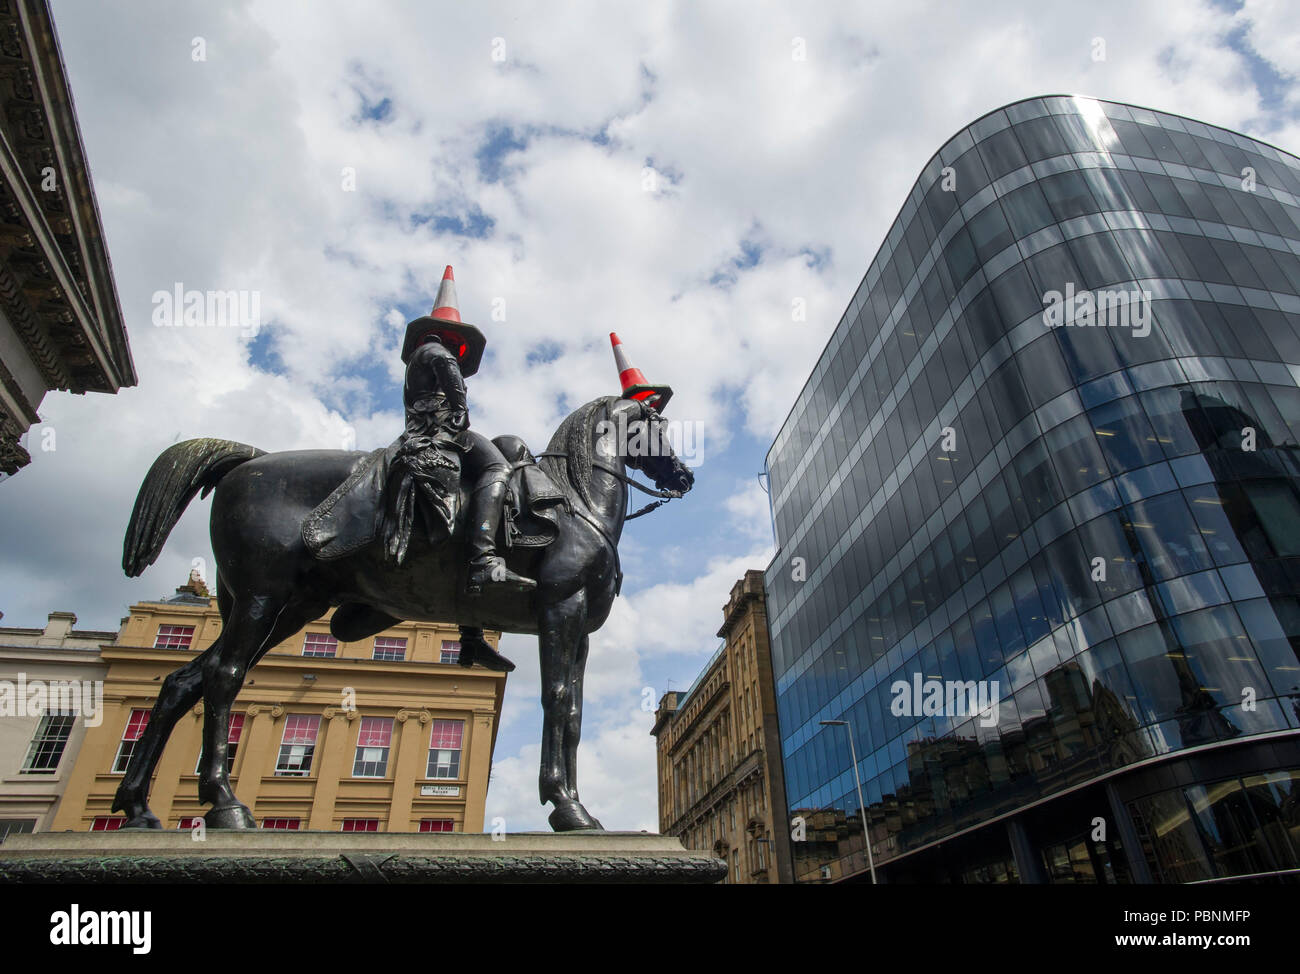 The equestrian Wellington Statue is a statue of Arthur Wellesley, 1st Duke of Wellington, located on Royal Exchange Square in Glasgow, Scotland. - Stock Image